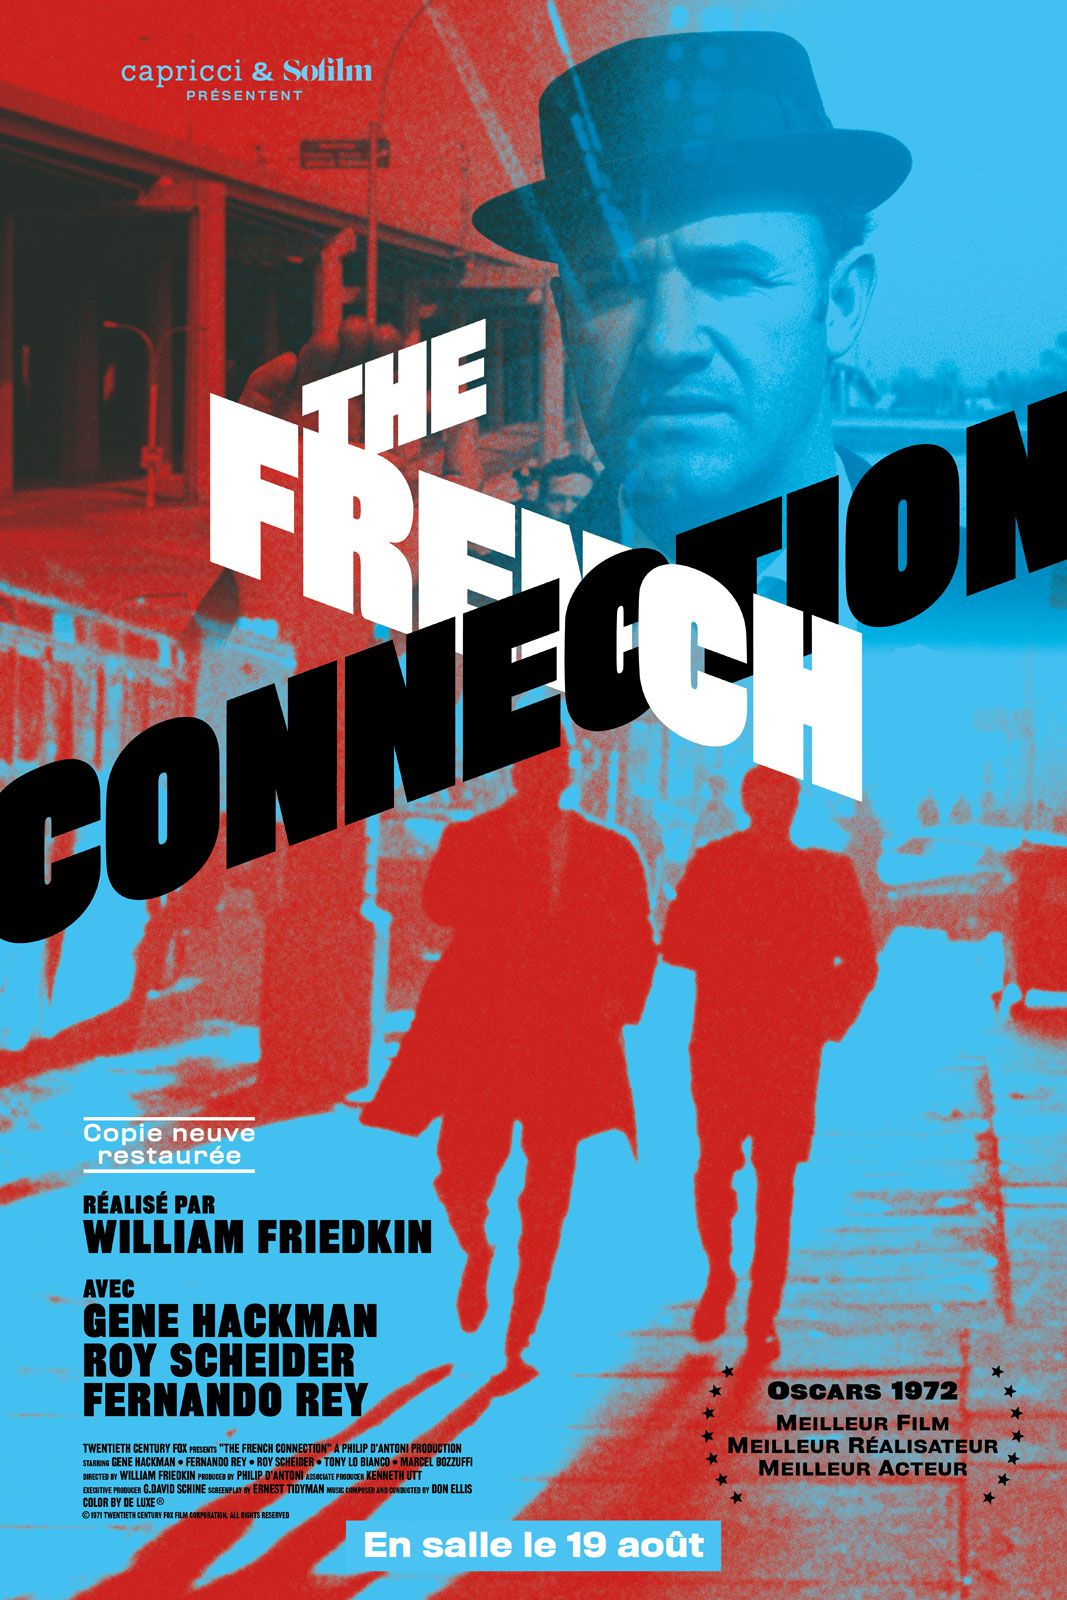 FRENCH CONNECTION - William Friedkin (1971)